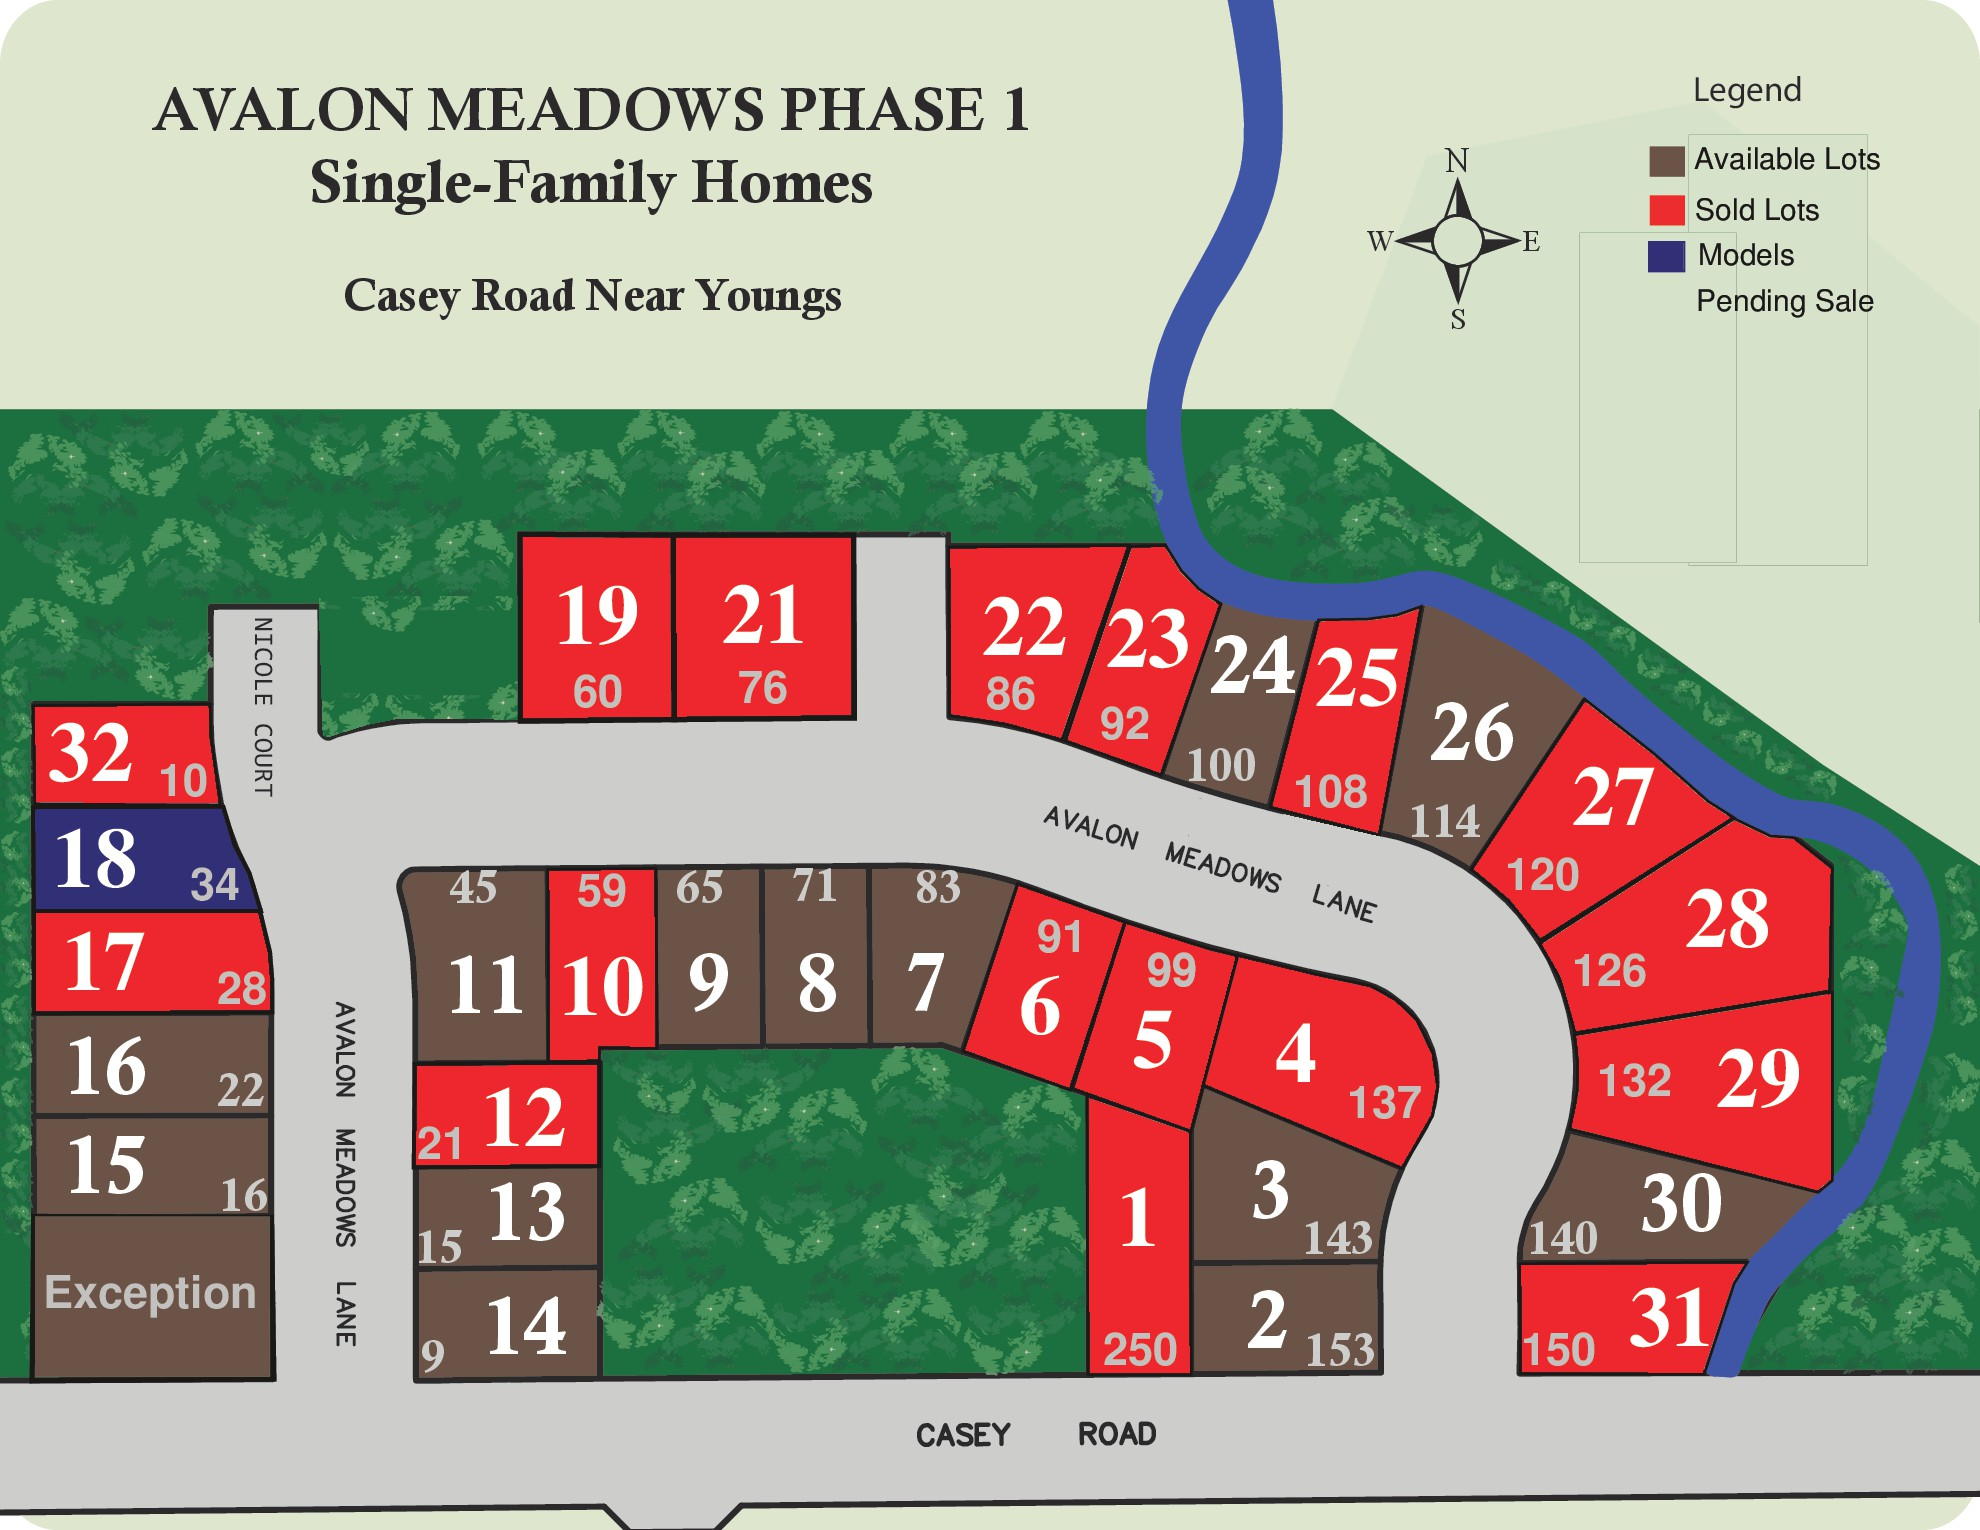 avalon meadows phase 1 map